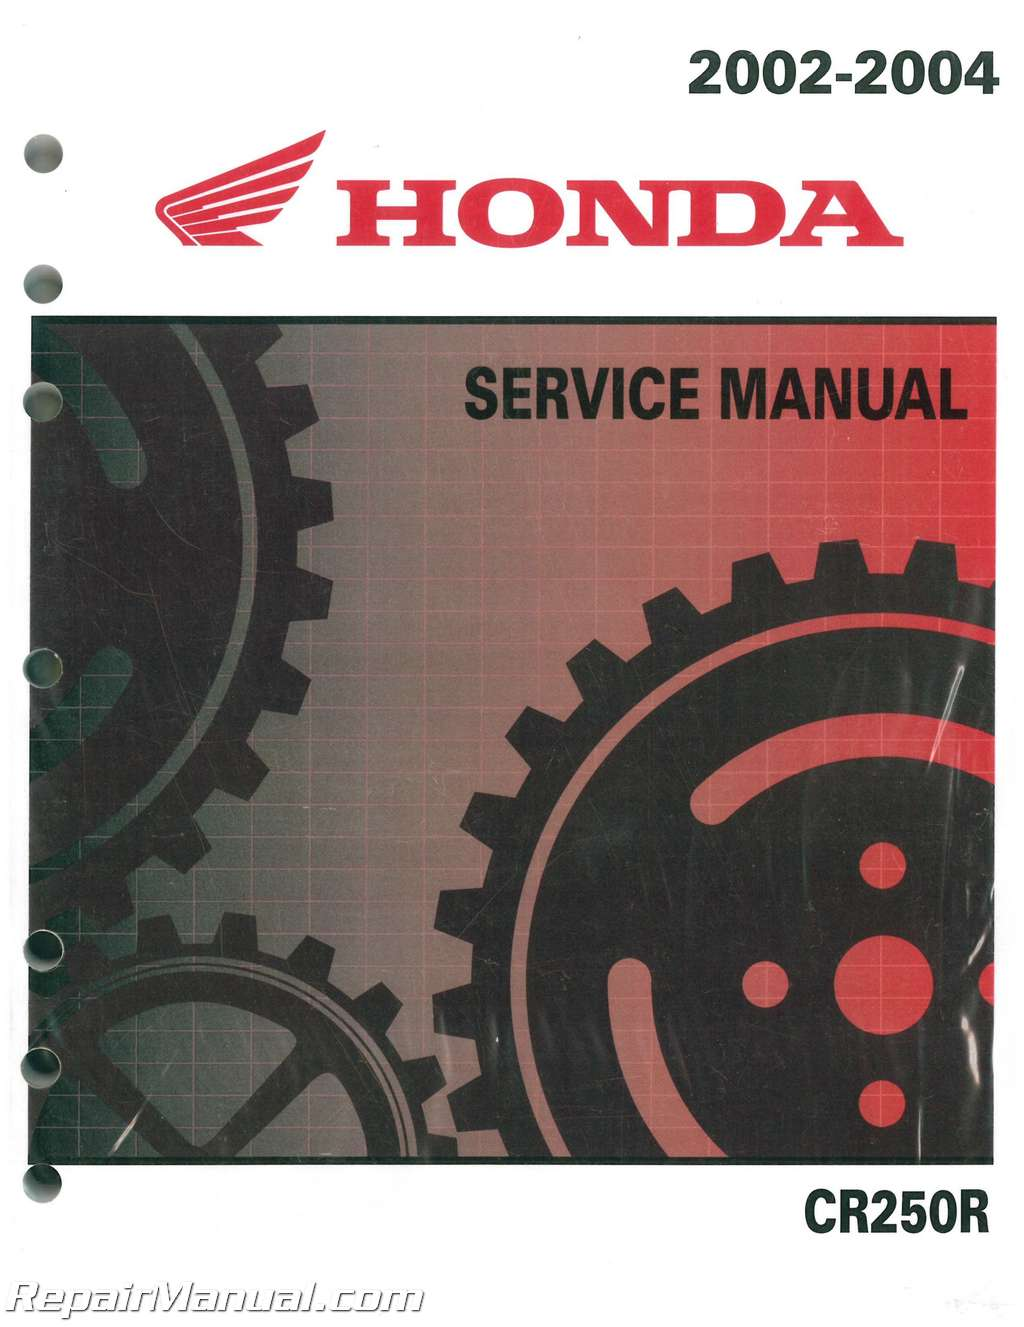 2002 2004 honda cr250r two stroke motorcycle service manual rh repairmanual com honda crf250r service manual pdf 2003 honda cr250r service manual free download